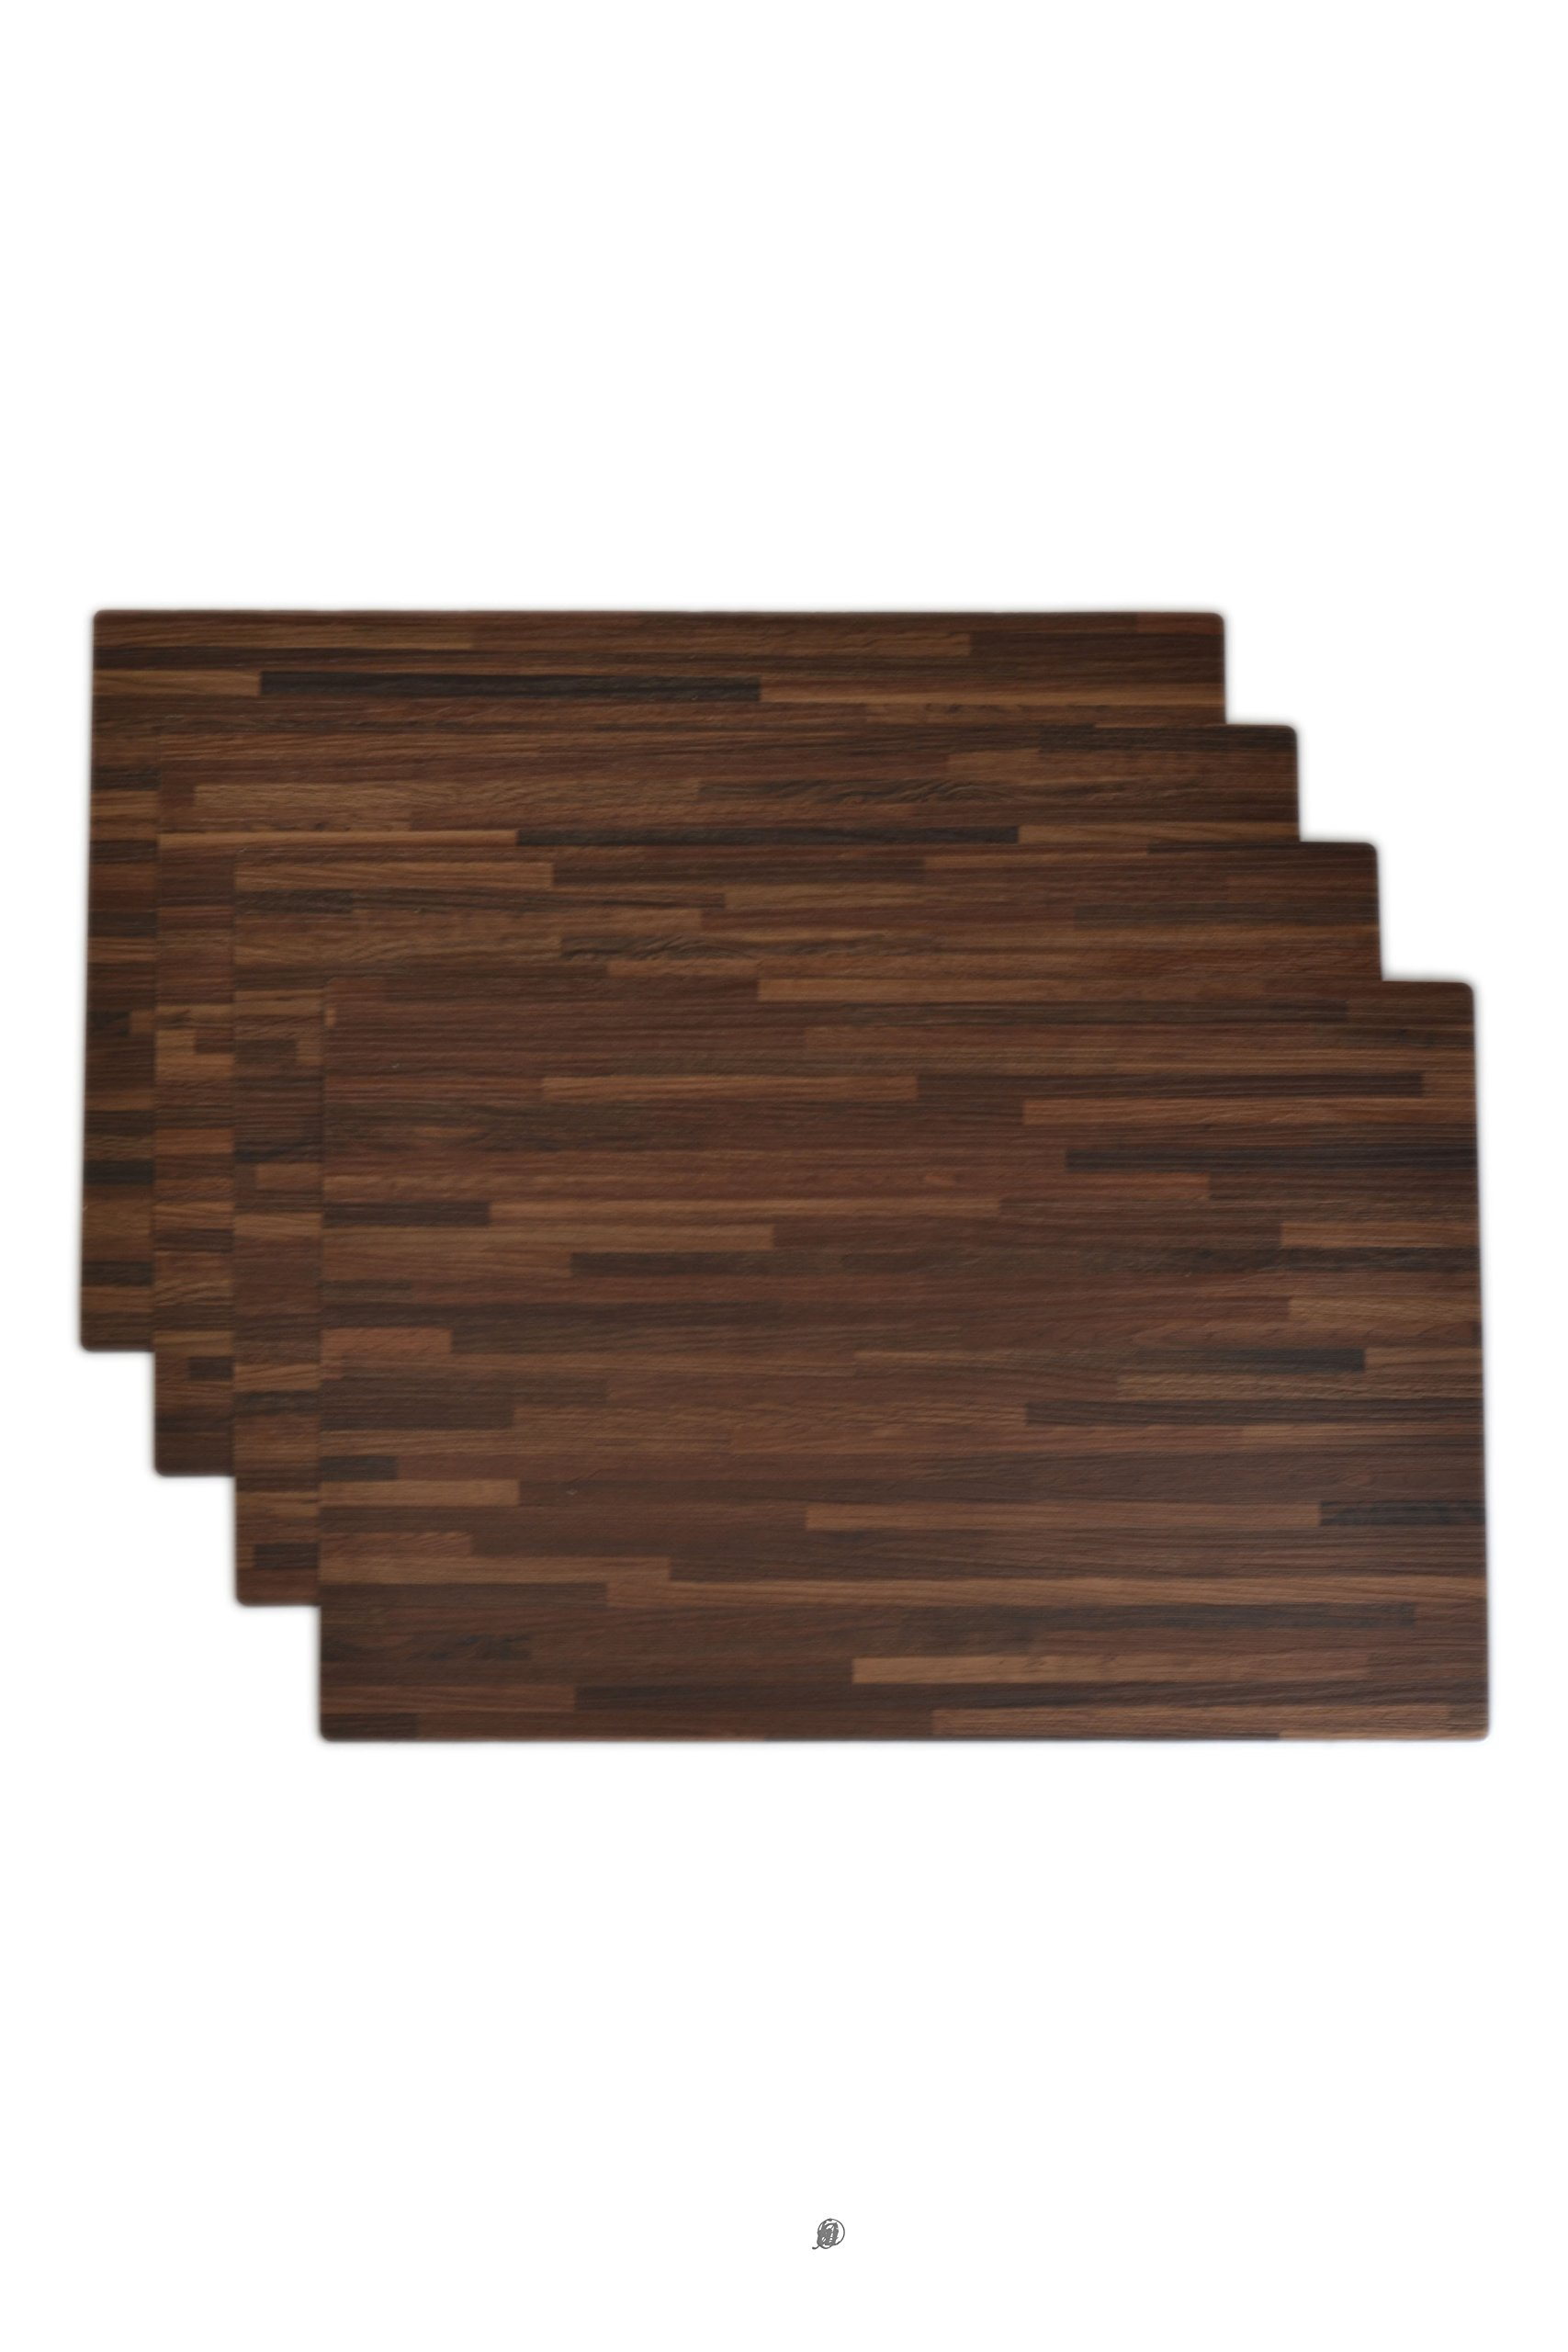 American Chateau Set 4 Reversible 18'' x 12'' Brown/Red Oak Wood Grain Black Table Mat Placemats